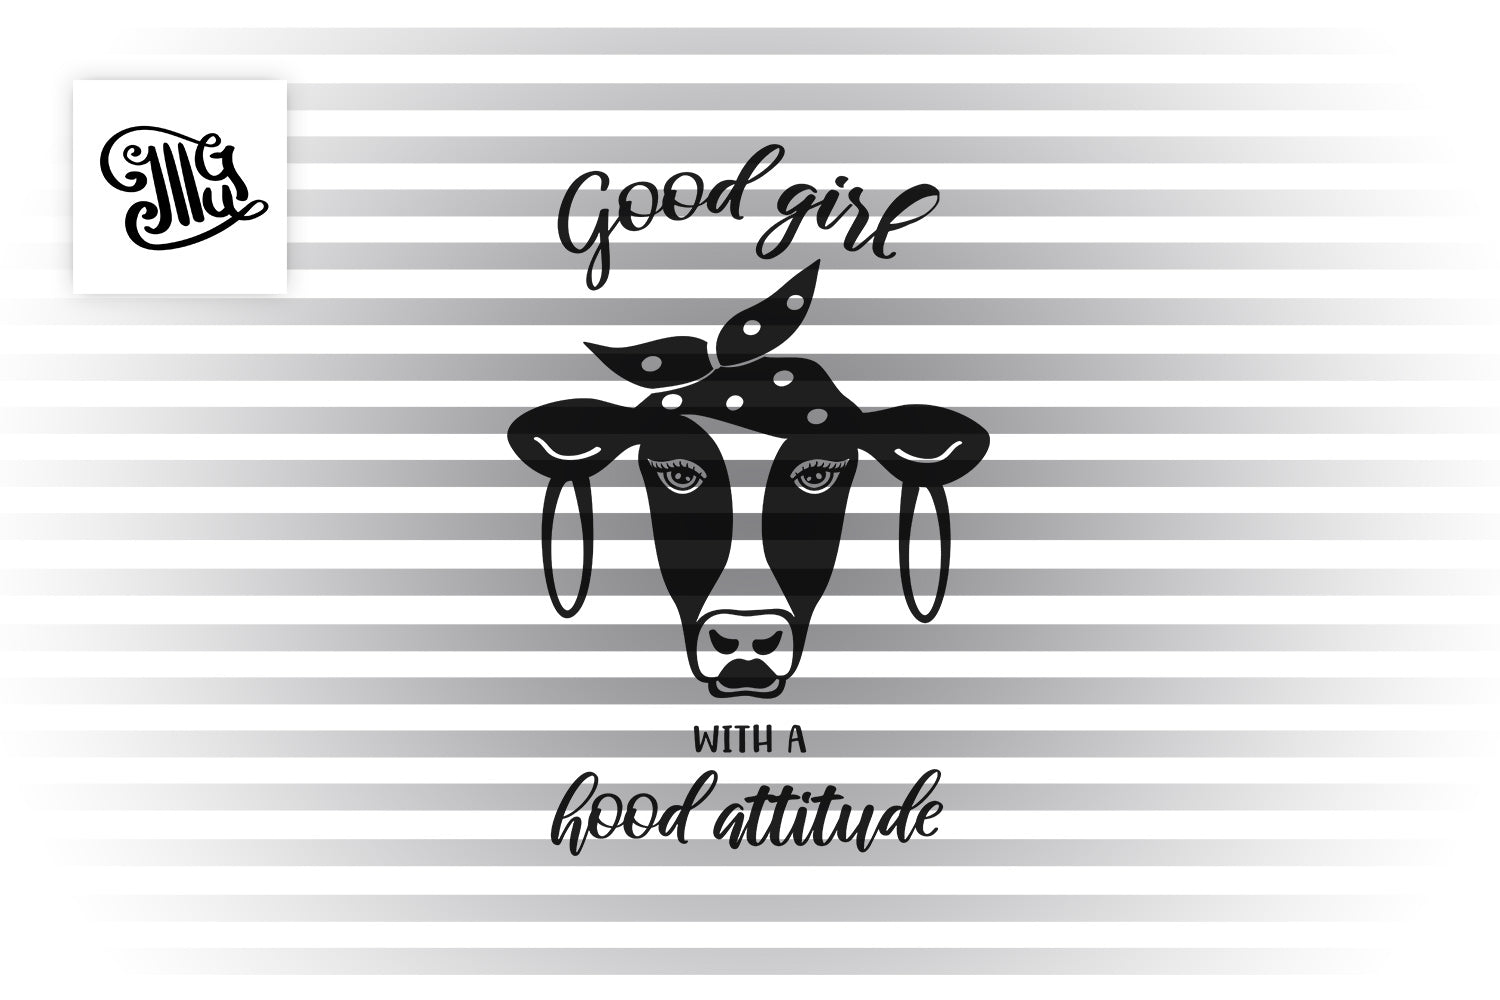 Good girl with a hood attitude svg | cow head SVG | bandana heifer sVG | Farmstyle svg | cowgirl svg-by Illustrator Guru